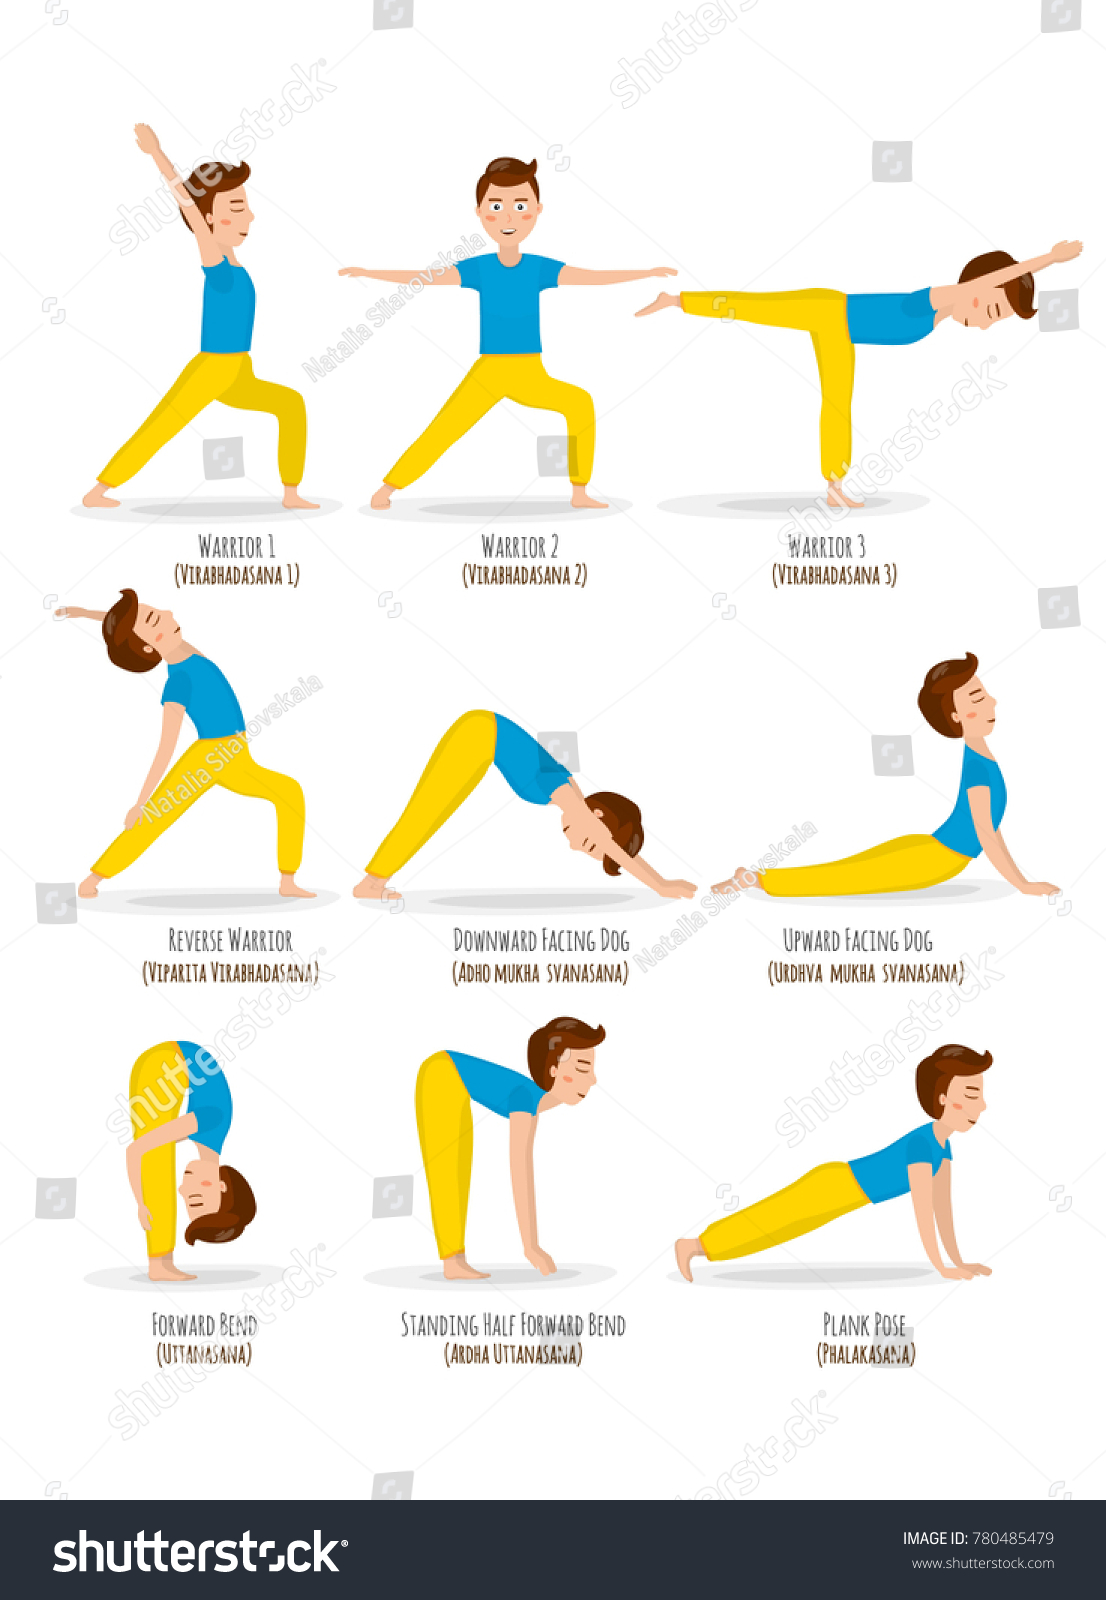 Yoga Basic Poses For Men Cartoon Character Healthy Lifestile Illustration Isolated On White